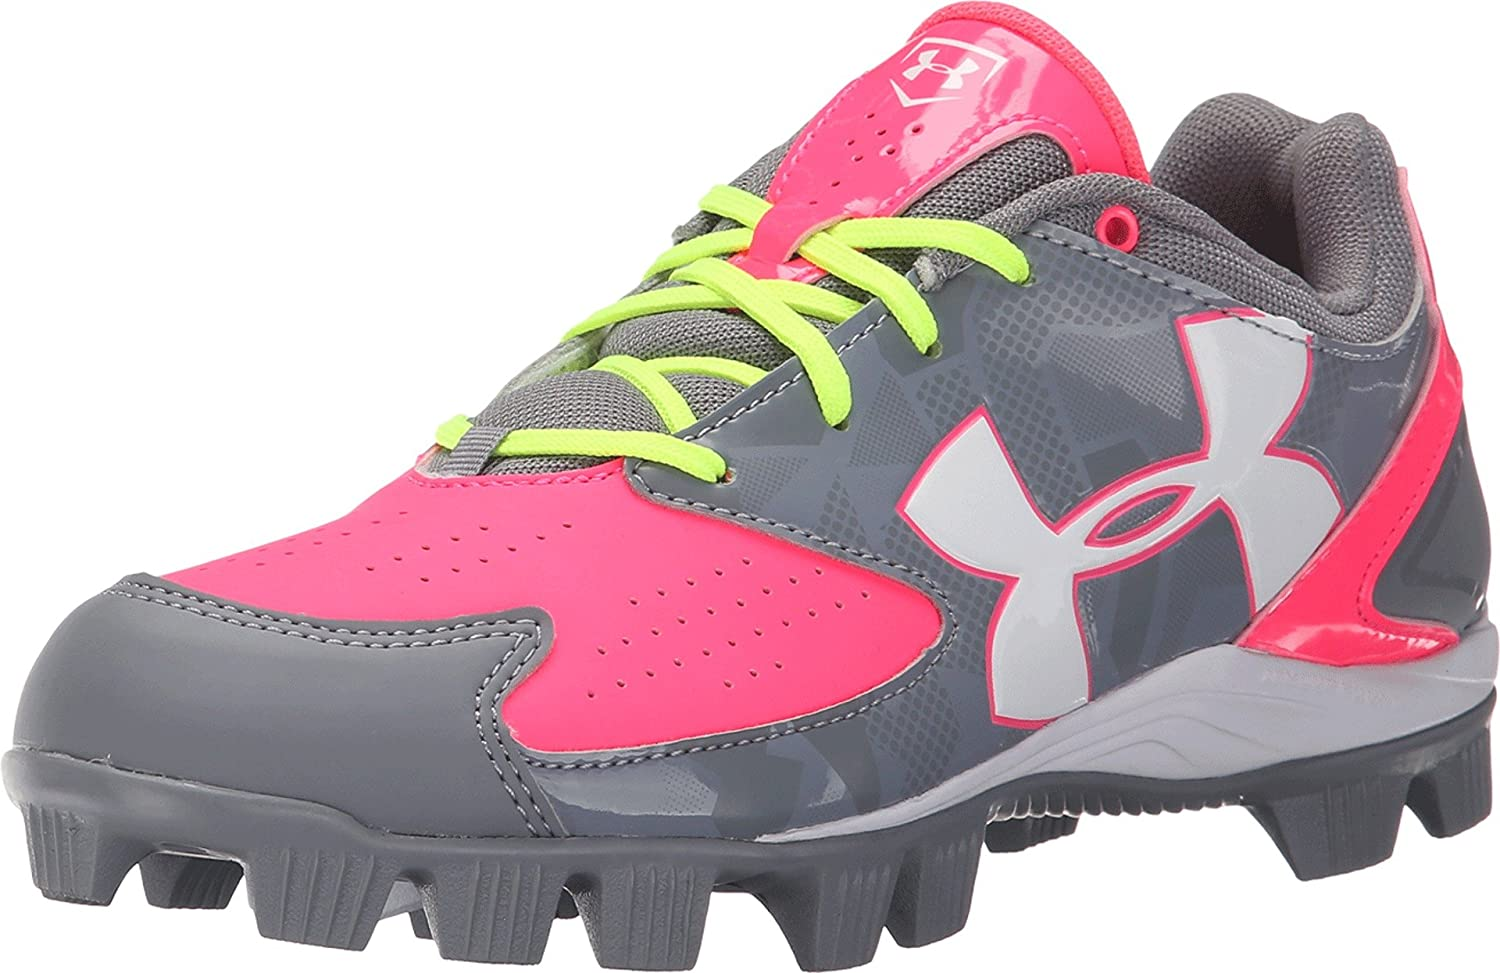 Under Armour Women's Glyde RM Softball Cleat